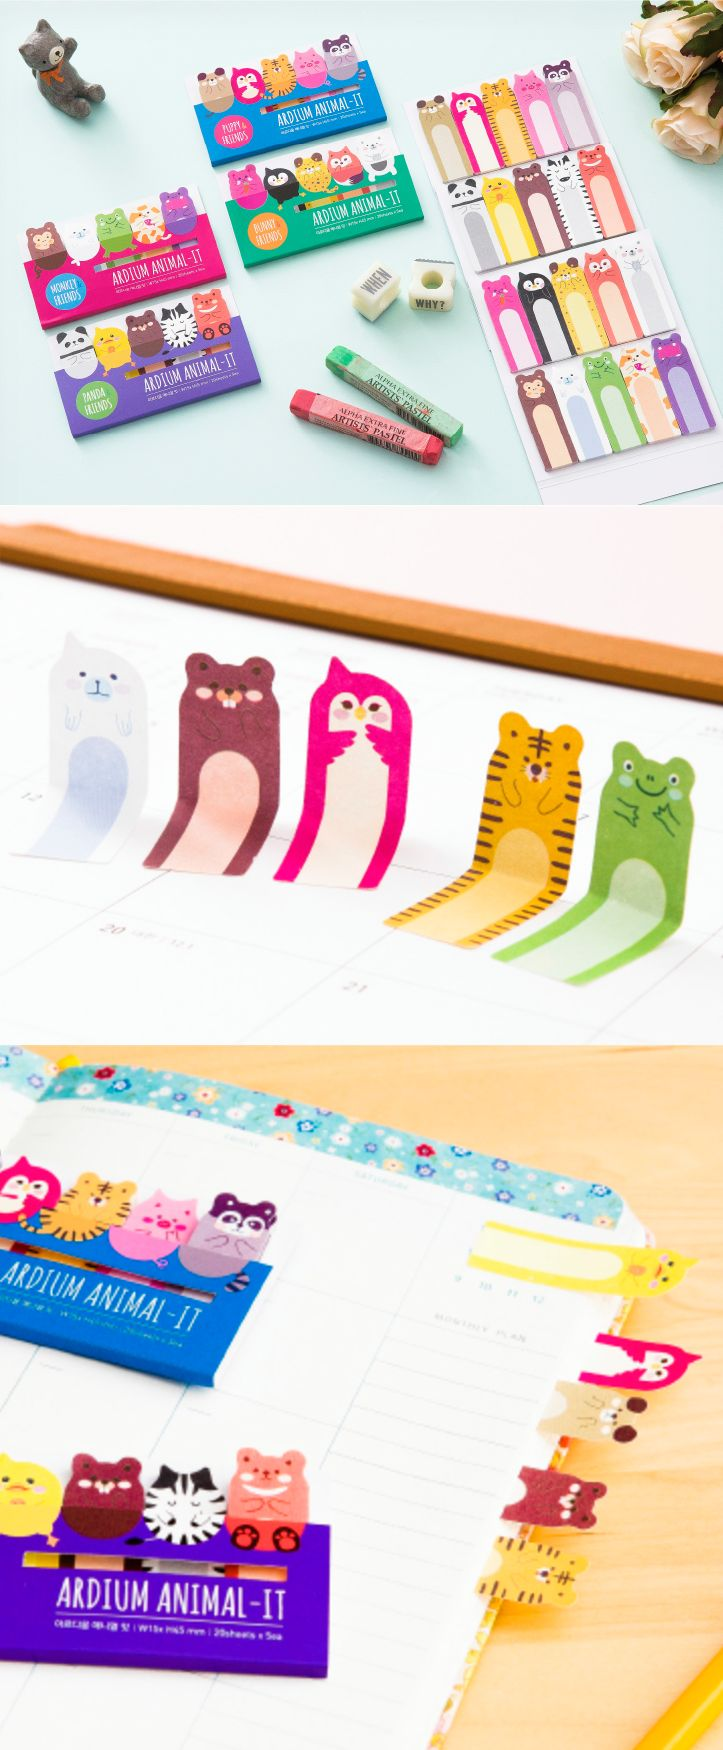 The Ardium Animal Index Sticky Note is a super cute and well made set of index sticky notes! The Ardium Animal Index Sticky Note contains a total of 100 index sticky notes (5 unique animal designs, 20 each) in a purchase. You can use these adorable index sticky notes as a sticky note, as a bookmark, and so much more!